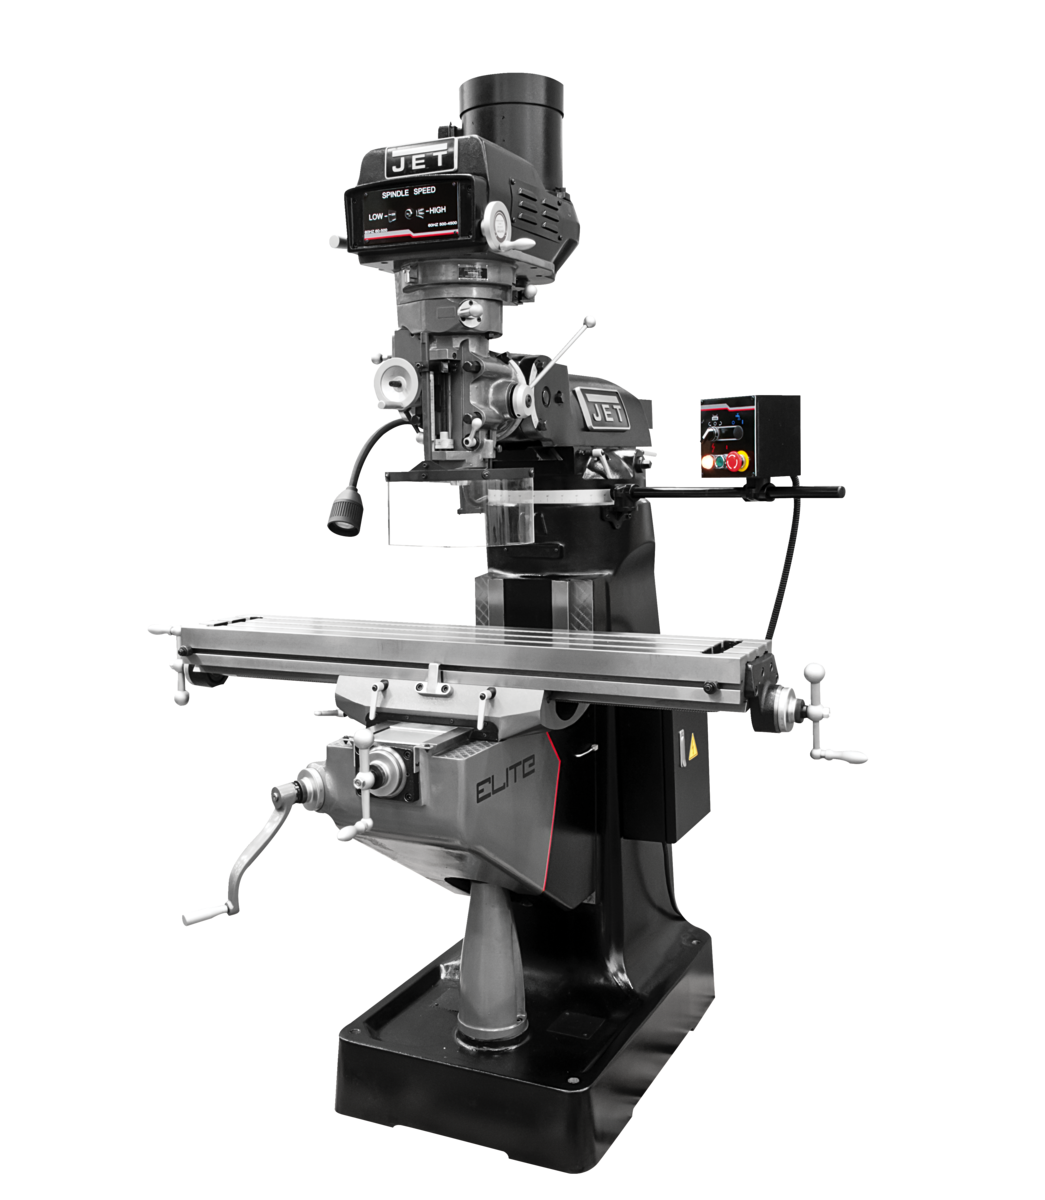 ETM-949 Mill with 2-Axis ACU-RITE 203 DRO and X-Axis JET Powerfeed